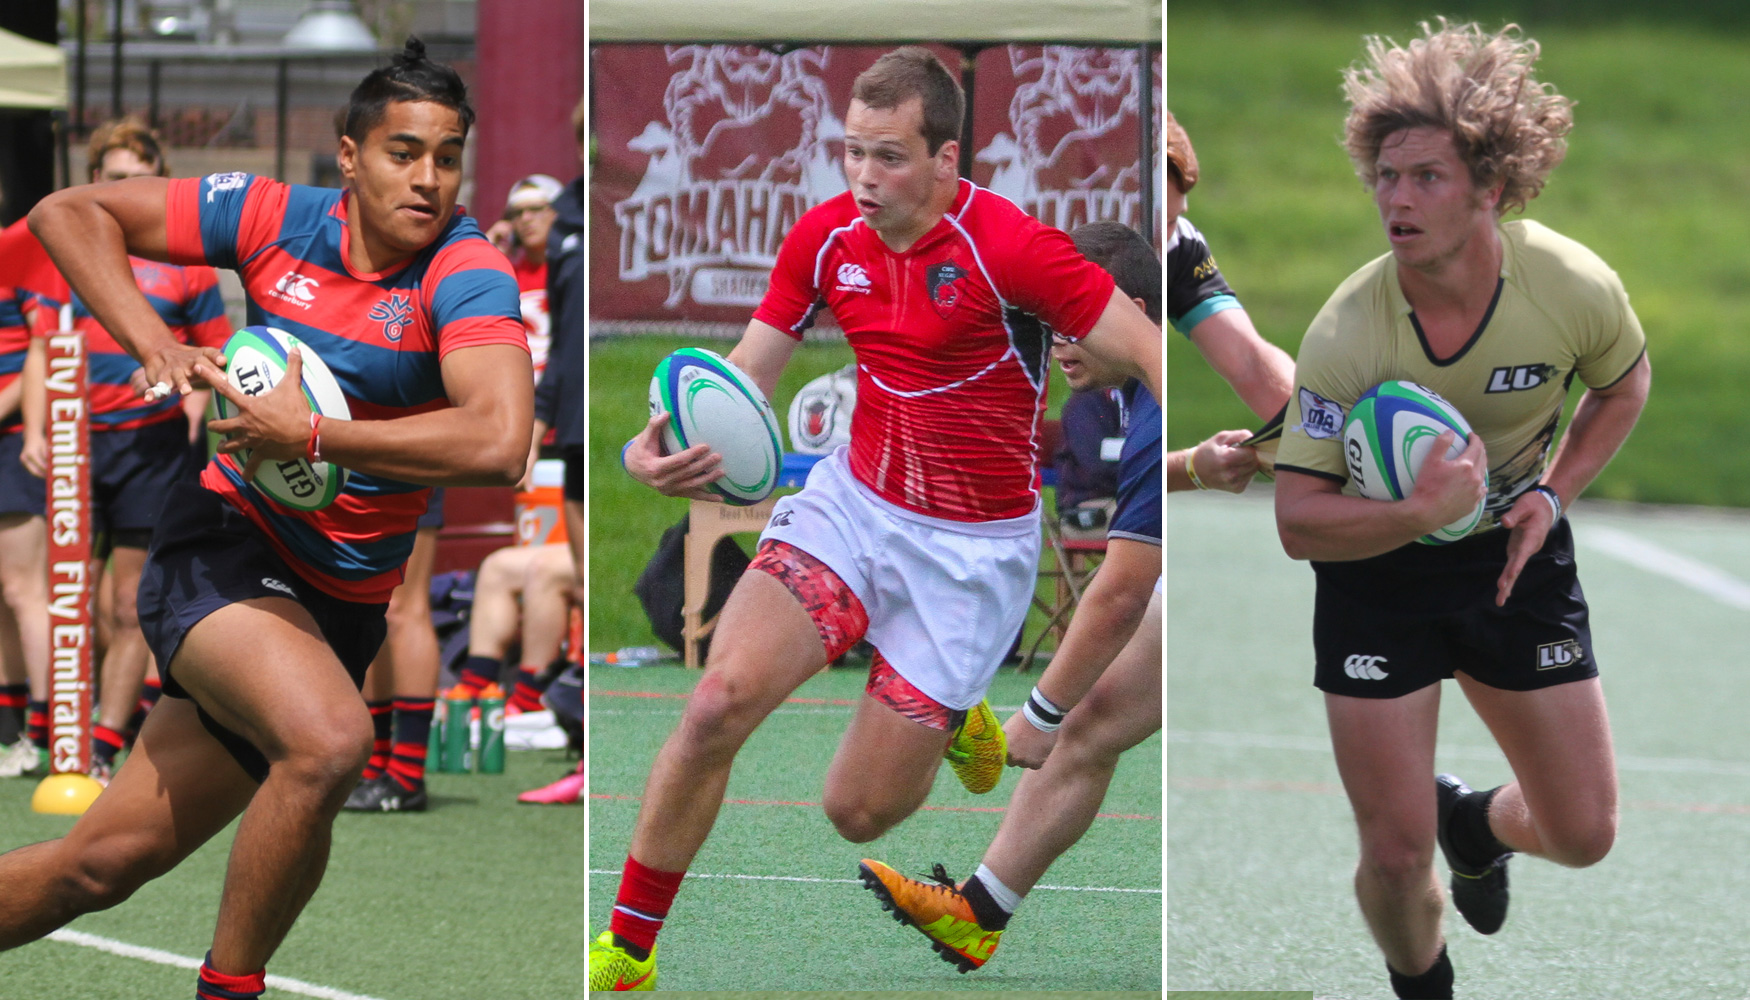 USA College 7s: Twenty-four teams in hunt for Men's DI College 7s National Championship